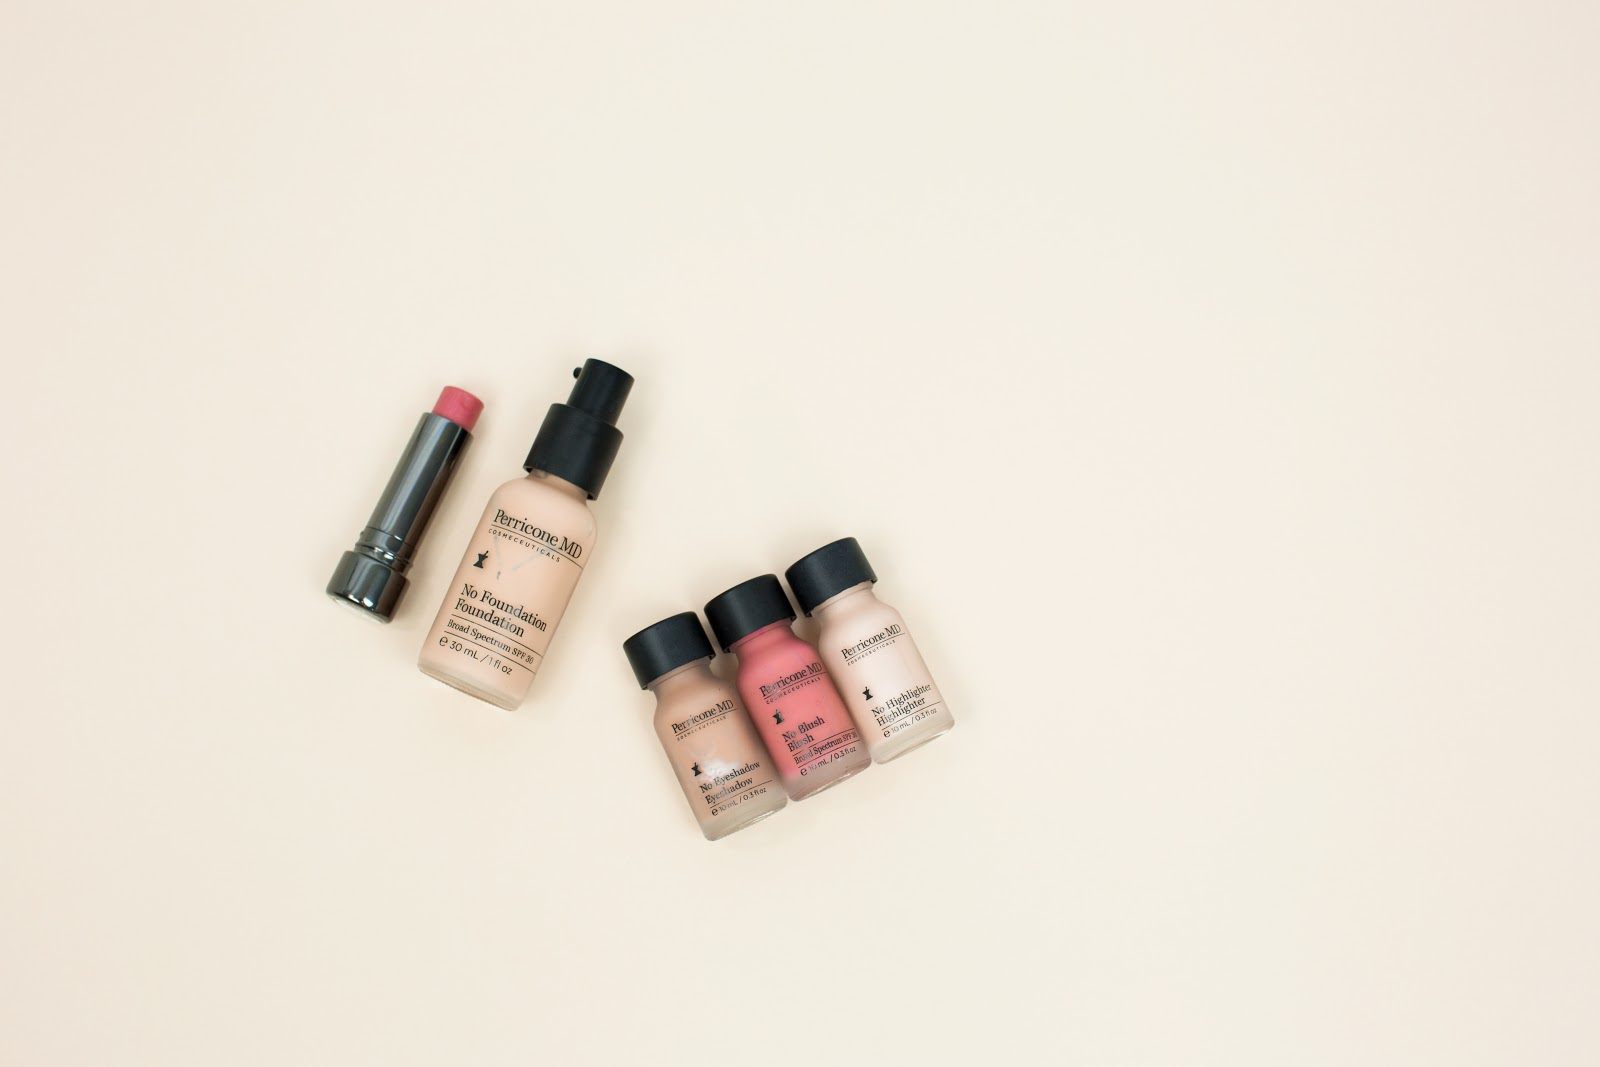 NEW IN CRUELTY-FREE MAKEUP: PERRICONE MD